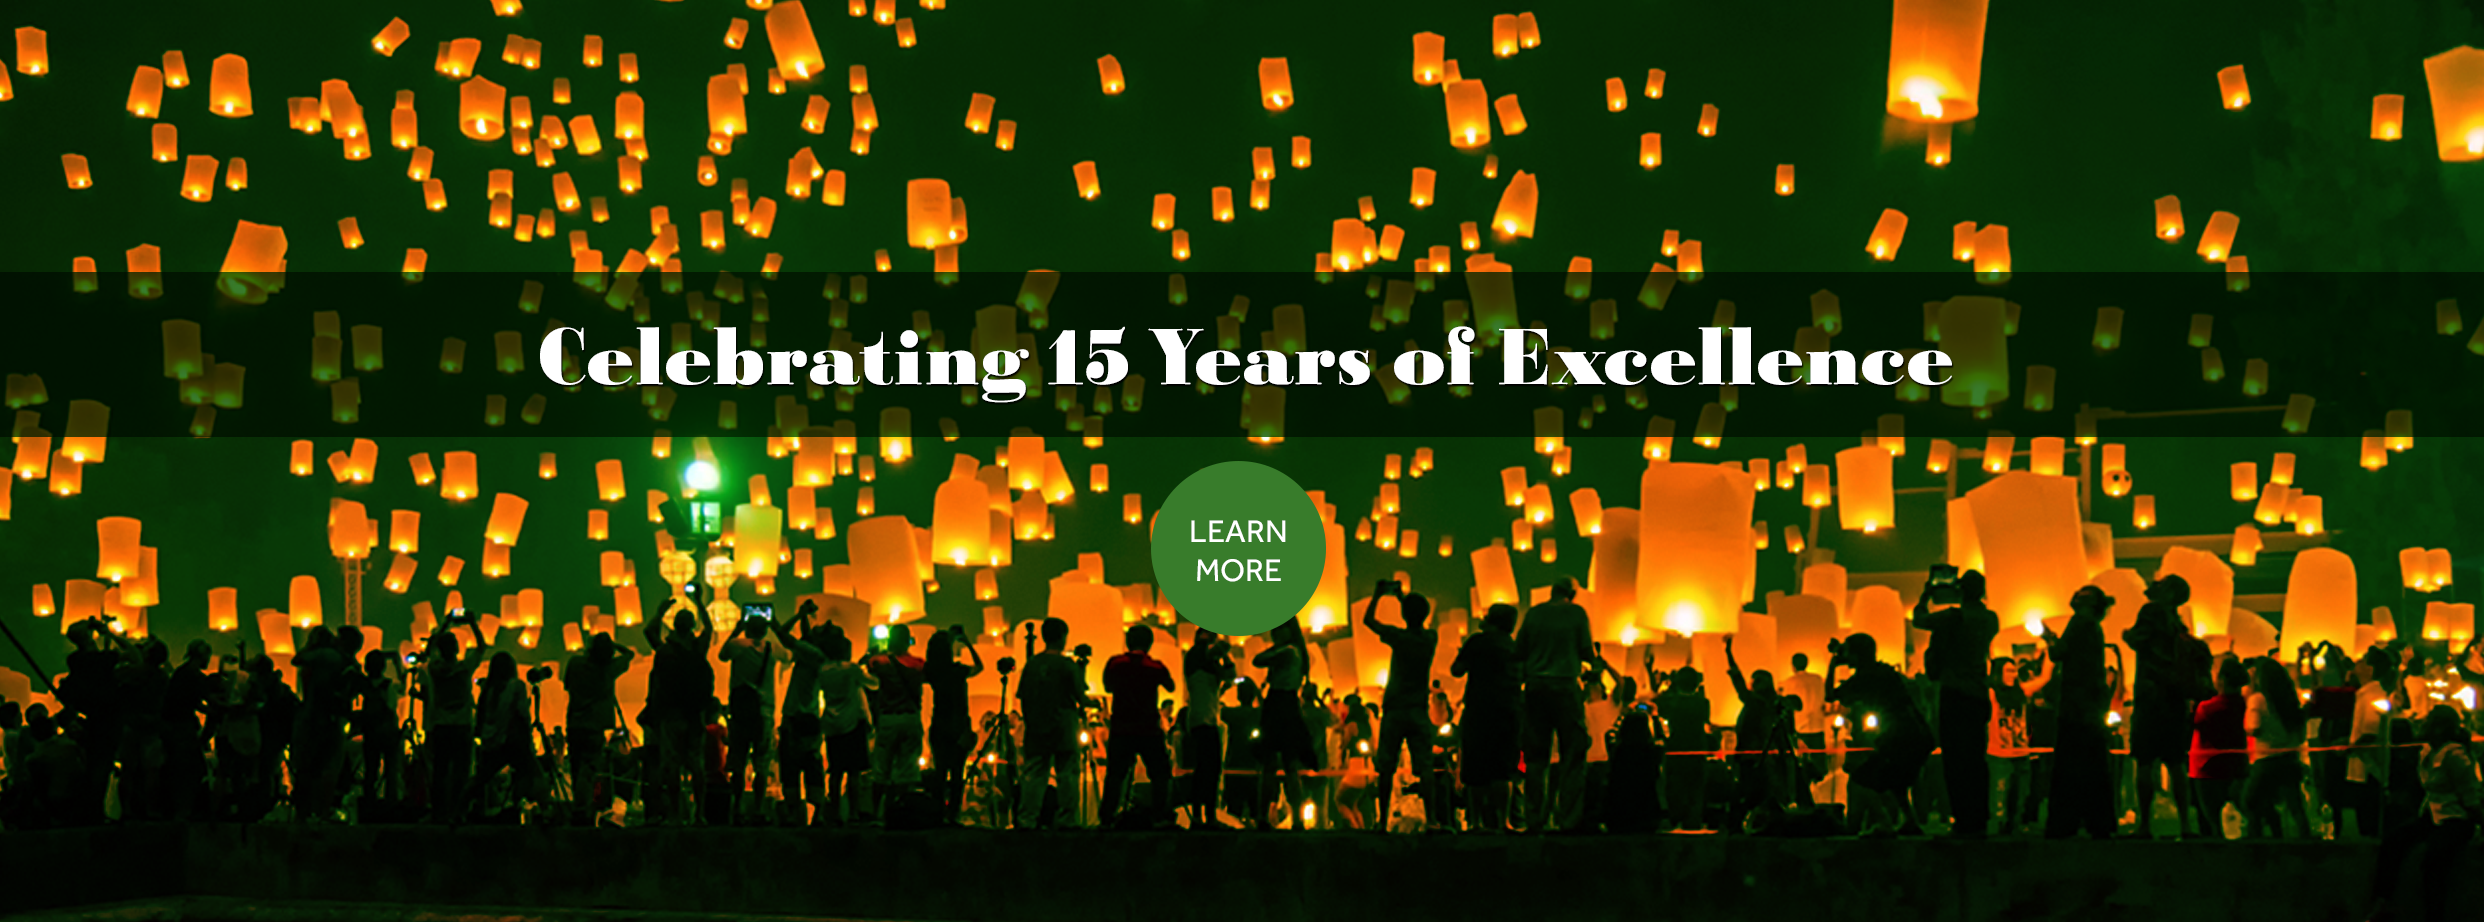 Celebrating 15 Years of Excellence